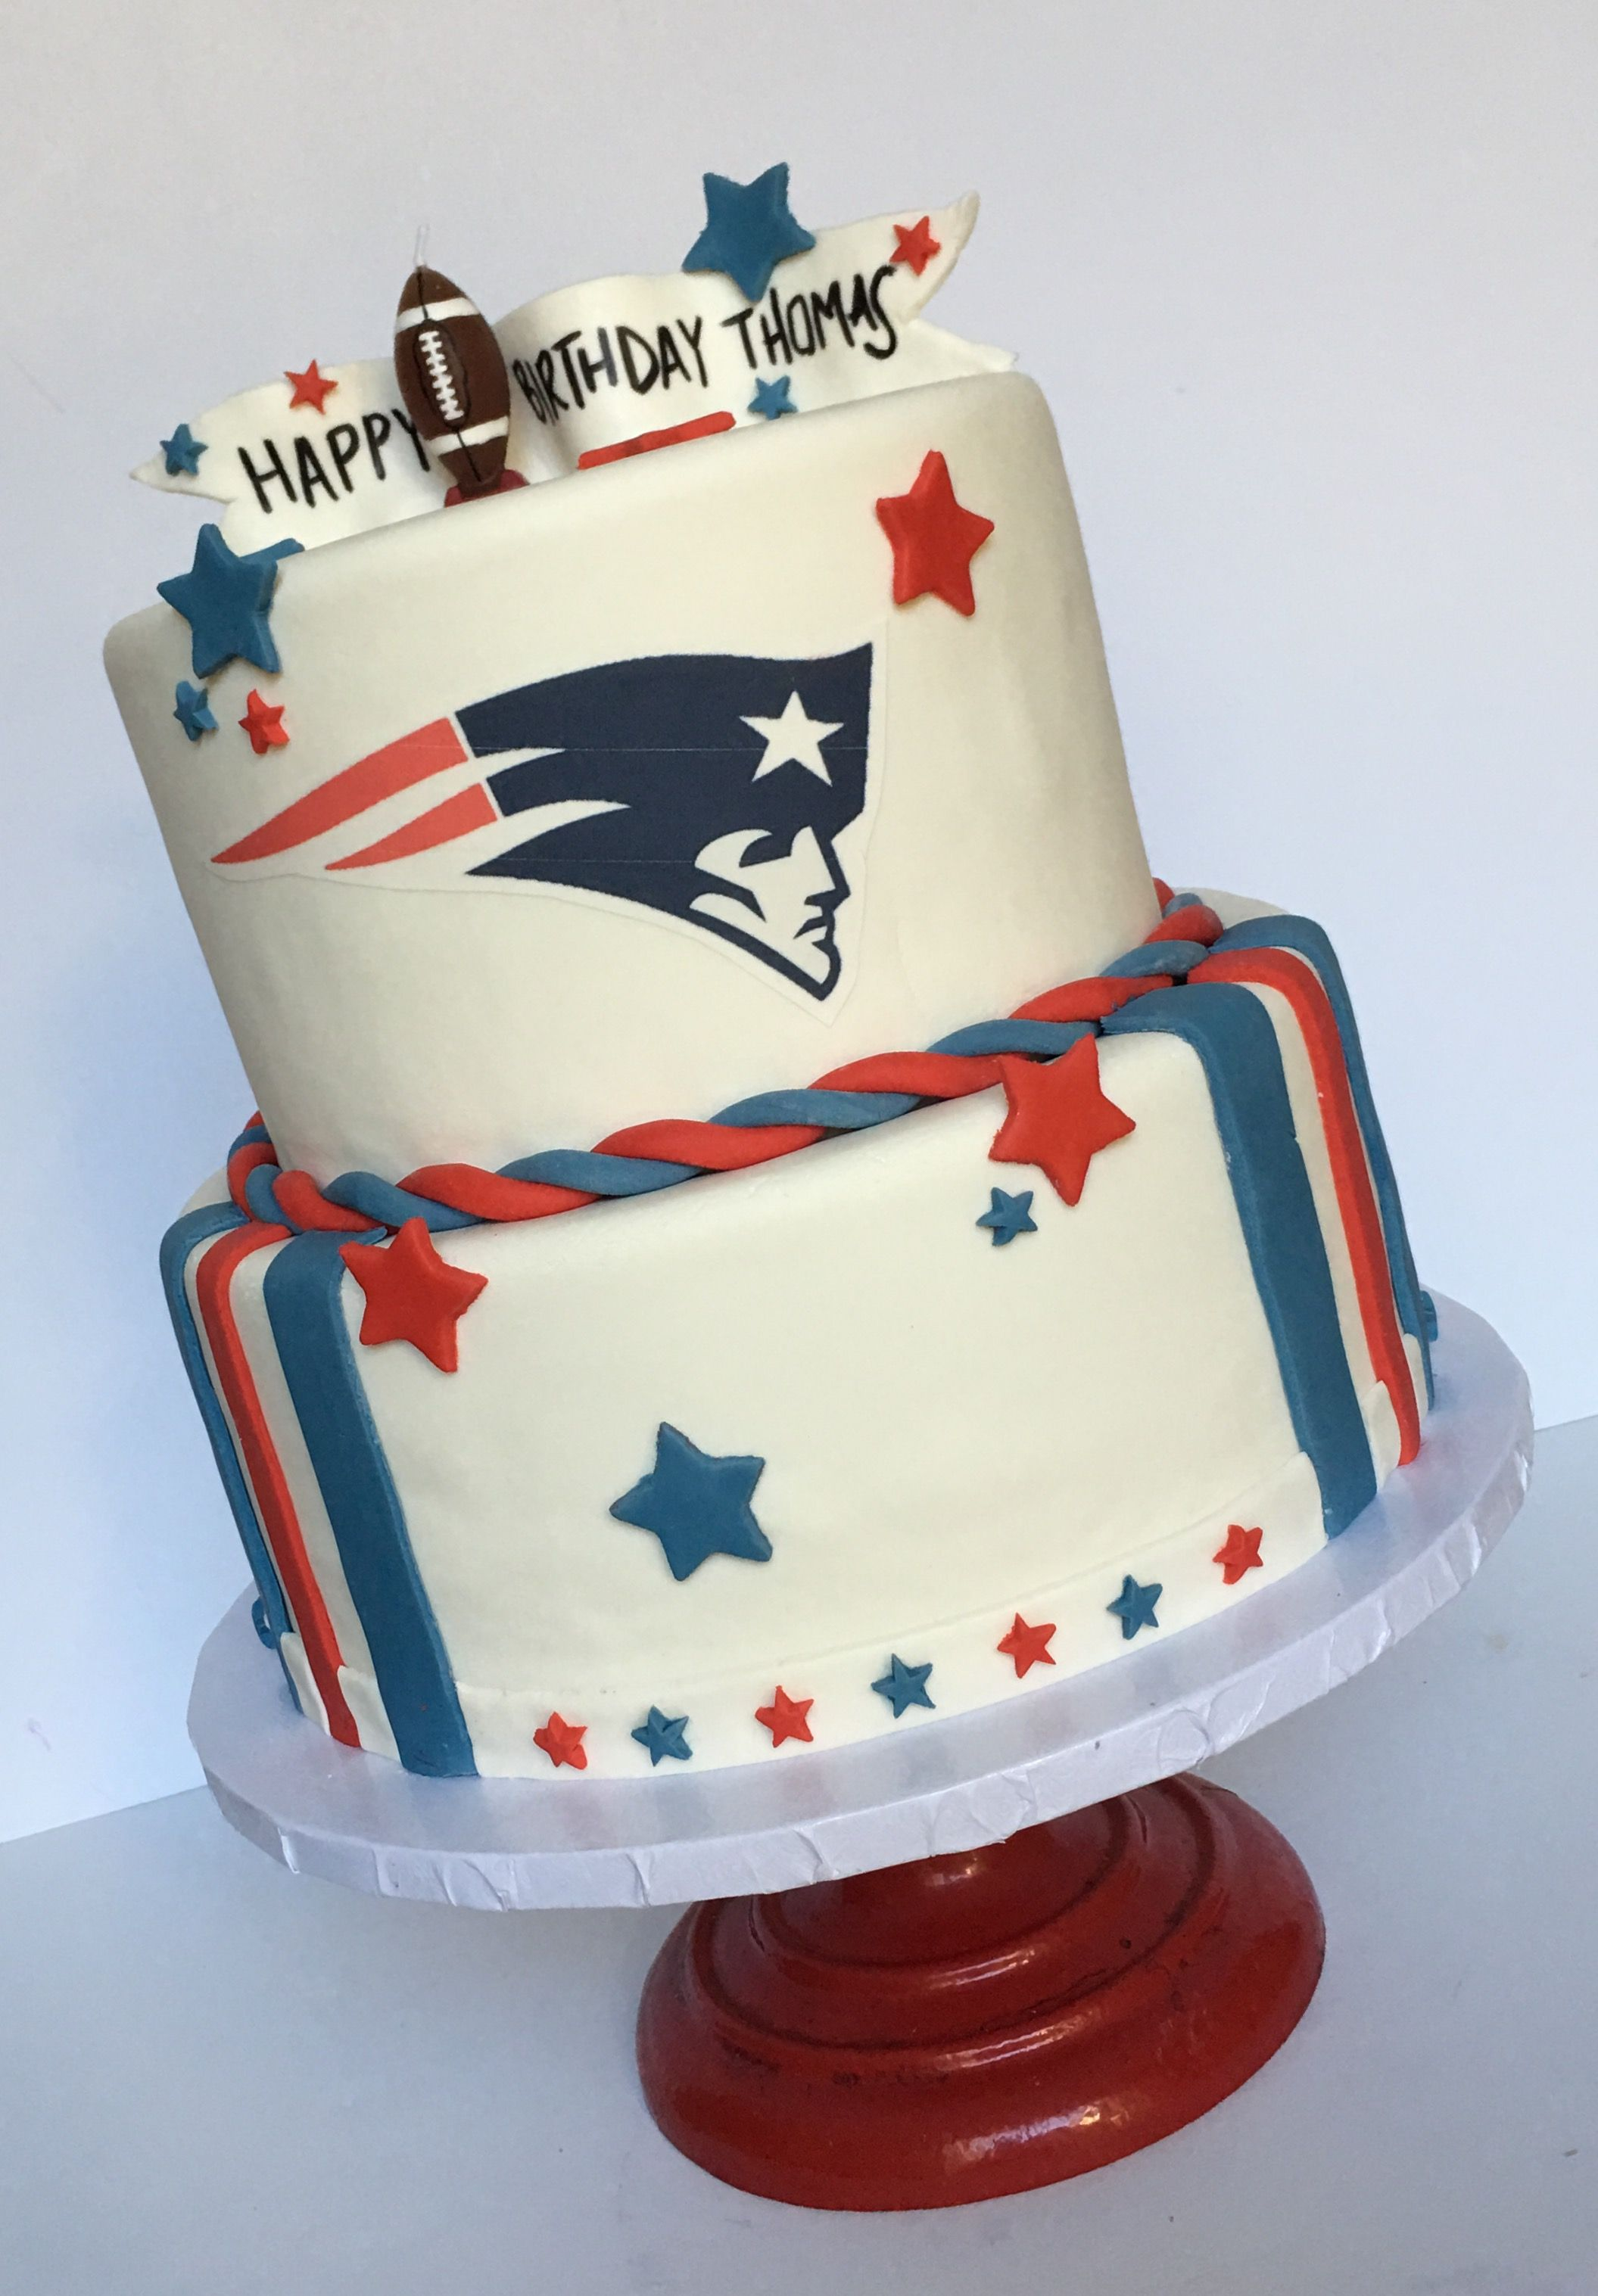 Red White And Blue Patriots Birthday Cake For A Boy S Football Birthday Party Birthday Cakes For Men Boy Birthday Cake Football Birthday Party